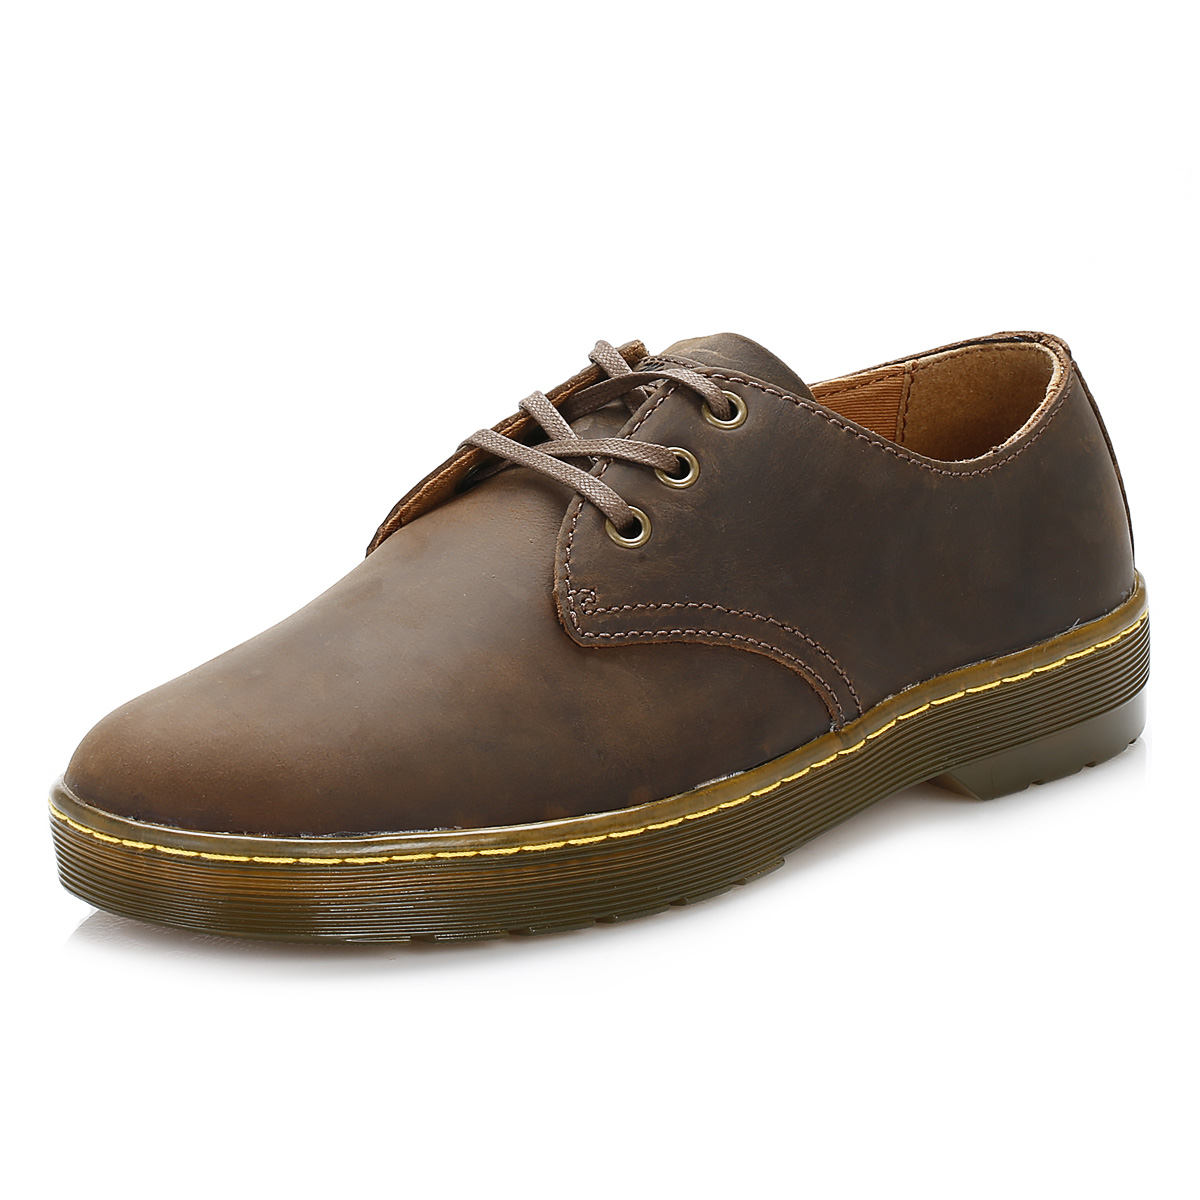 Dr Martens Shoes Uk Ebay